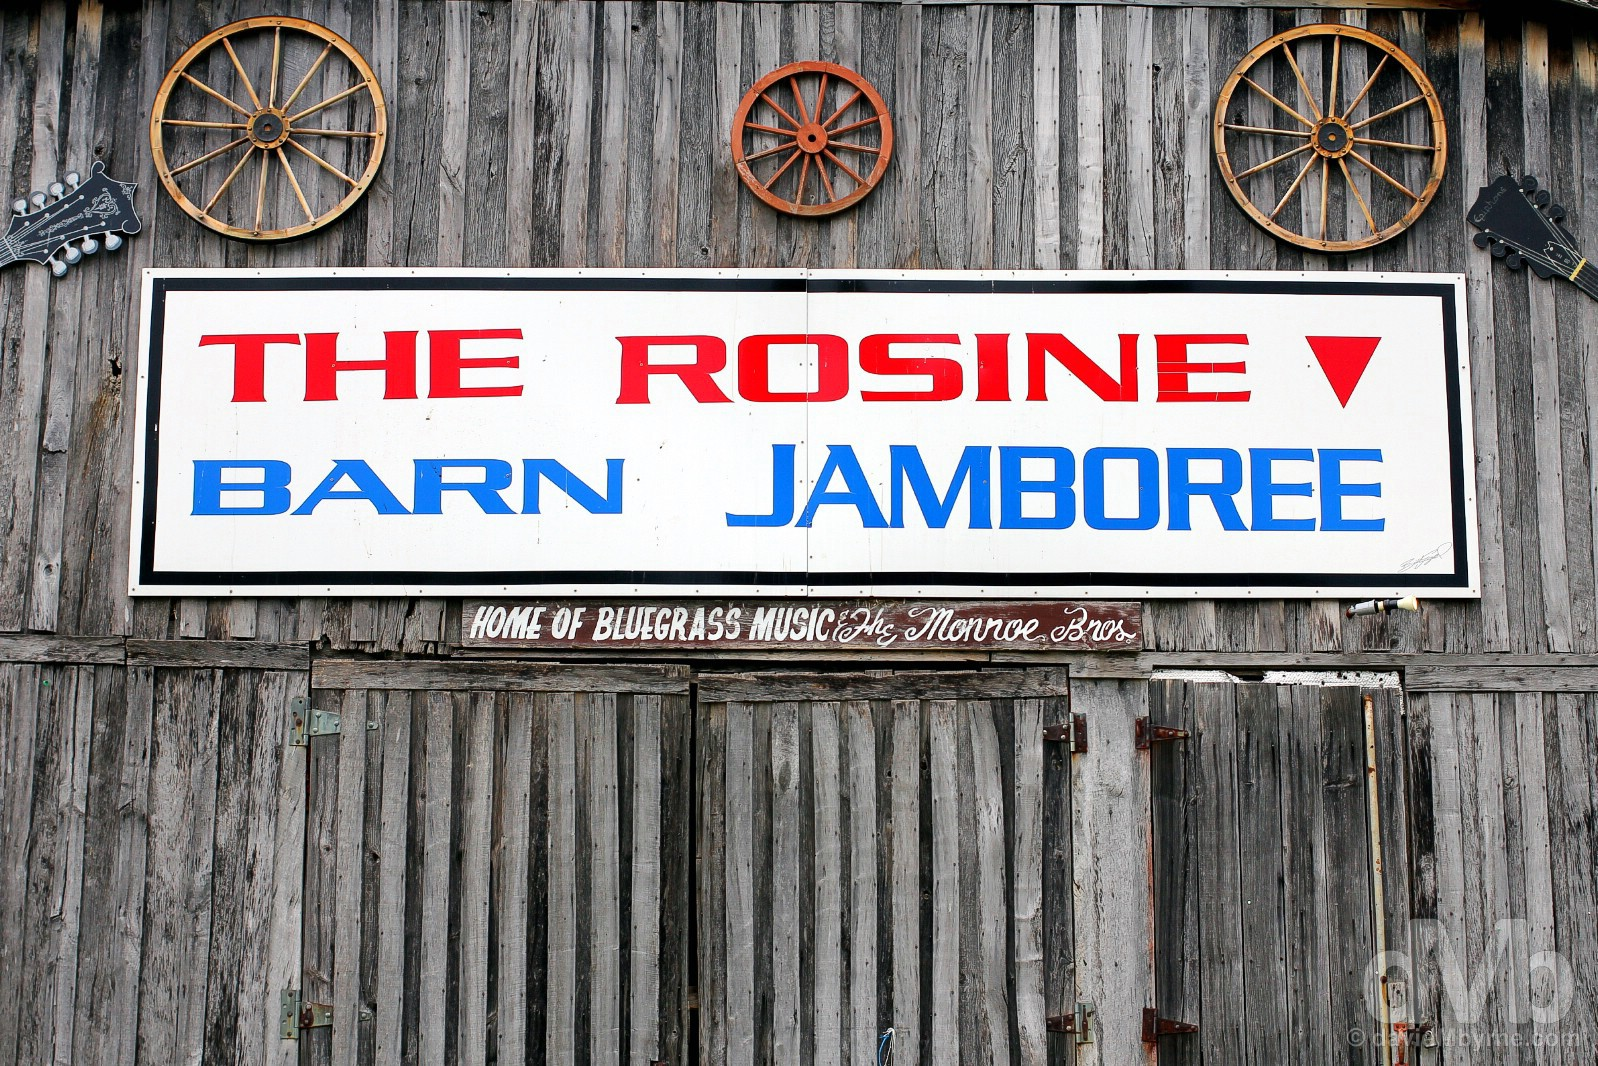 The Barn Jamboree in Rosine, Ohio County, Kentucky, USA. September 28, 2016.